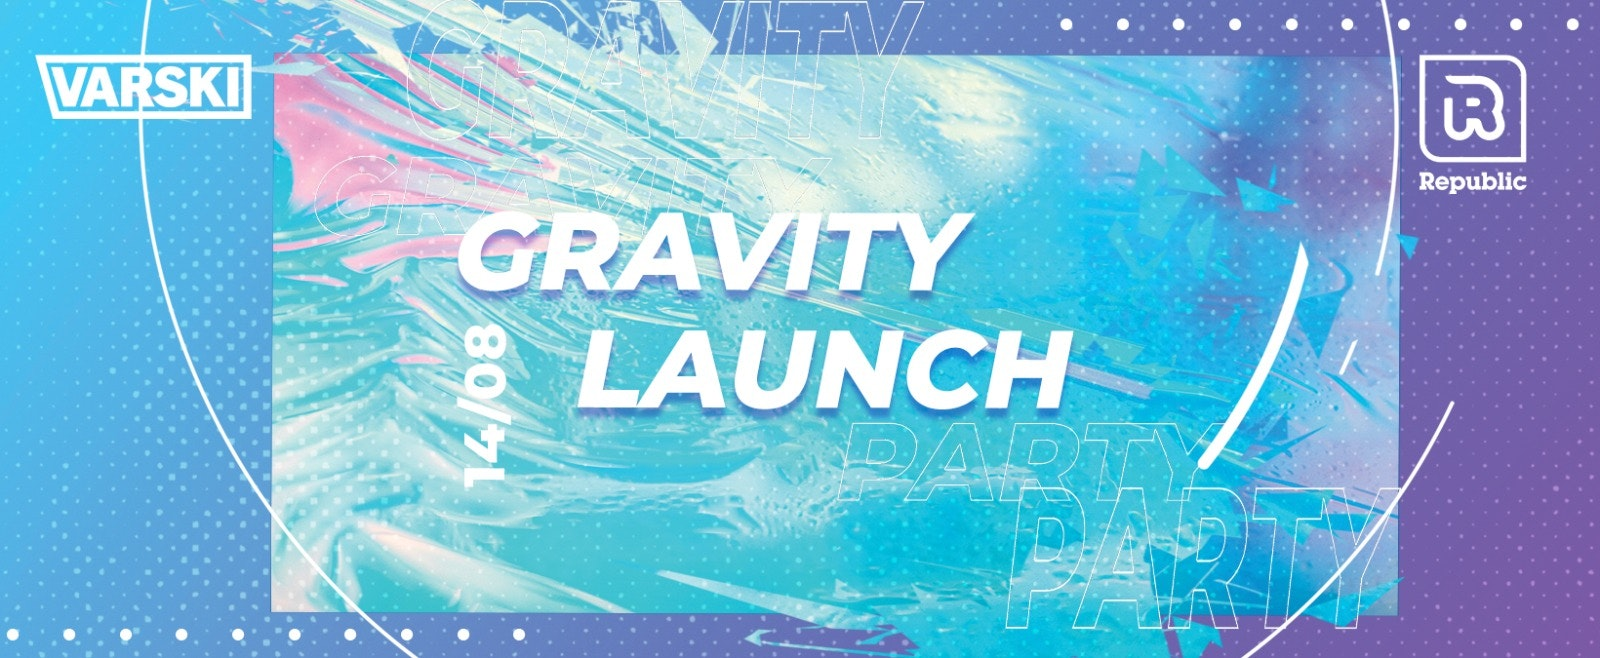 Varski Gravity Launch Party – 4 Rooms of Music / 10 Bars / 1 Destination